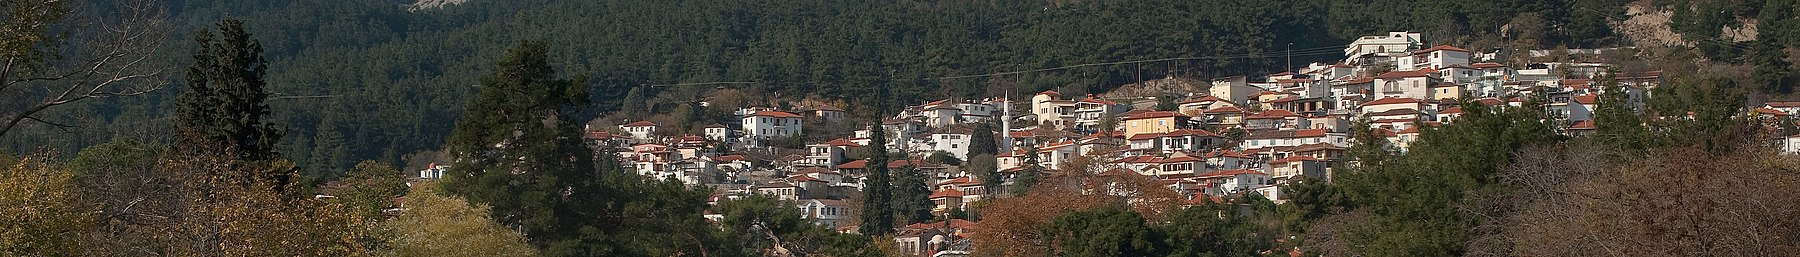 20091128 Xanthi Greece 1 (cropped).jpg